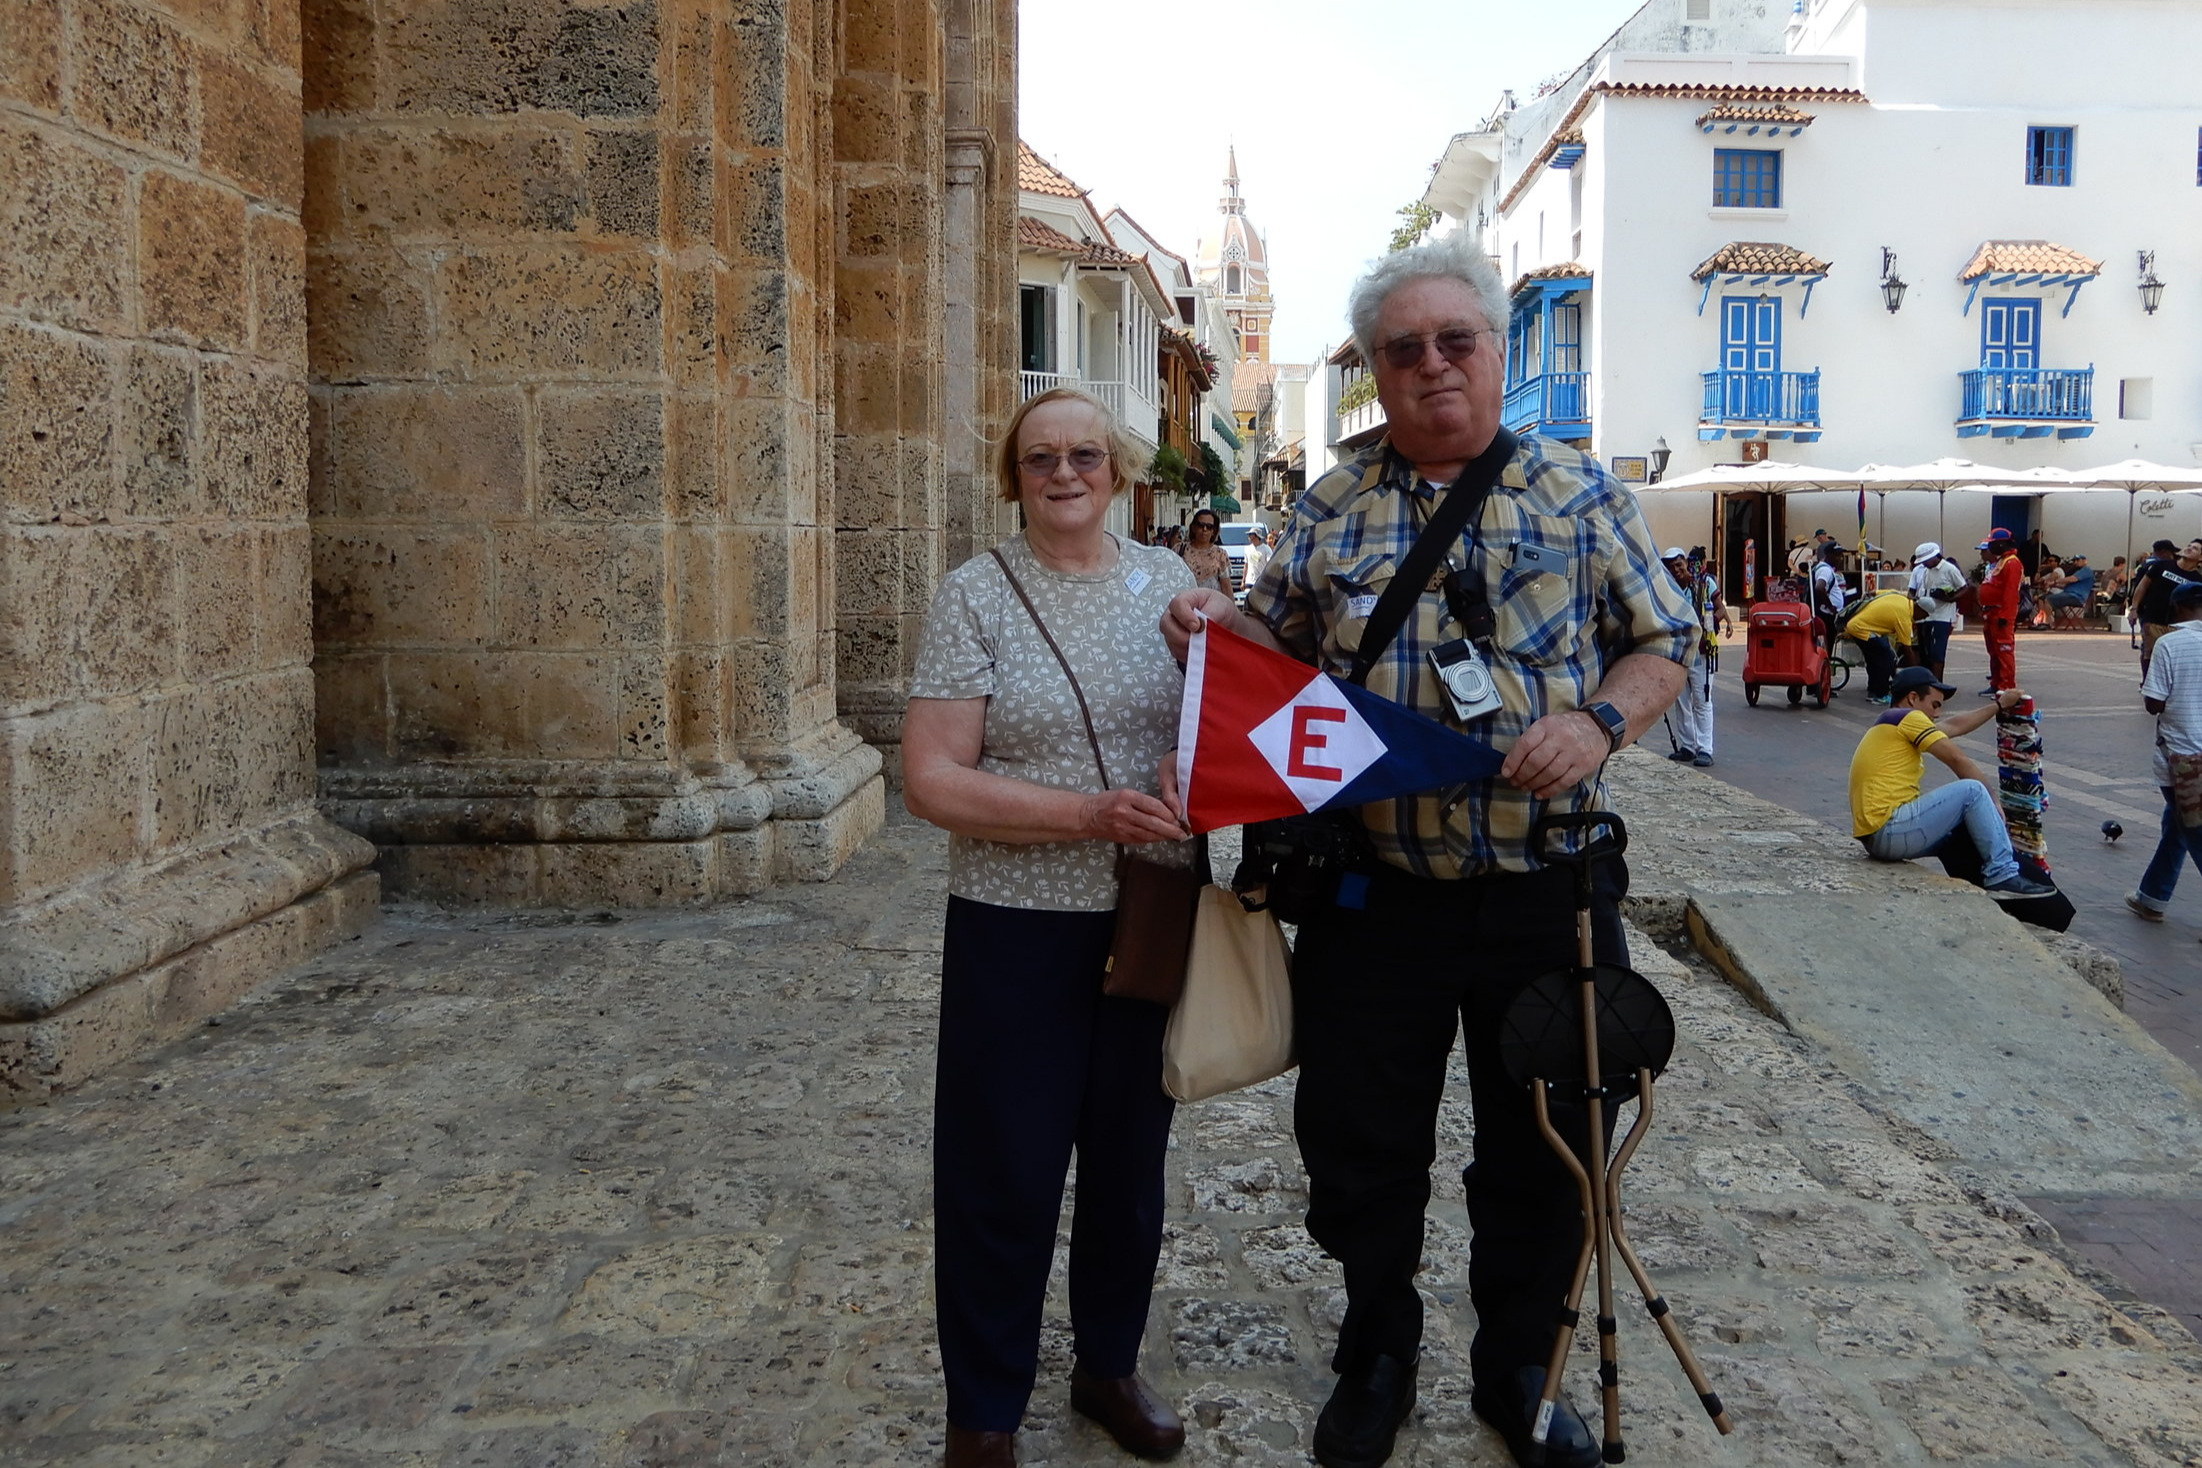 Joan & Keith Dunlap in the town square of Cartegena, Colombia